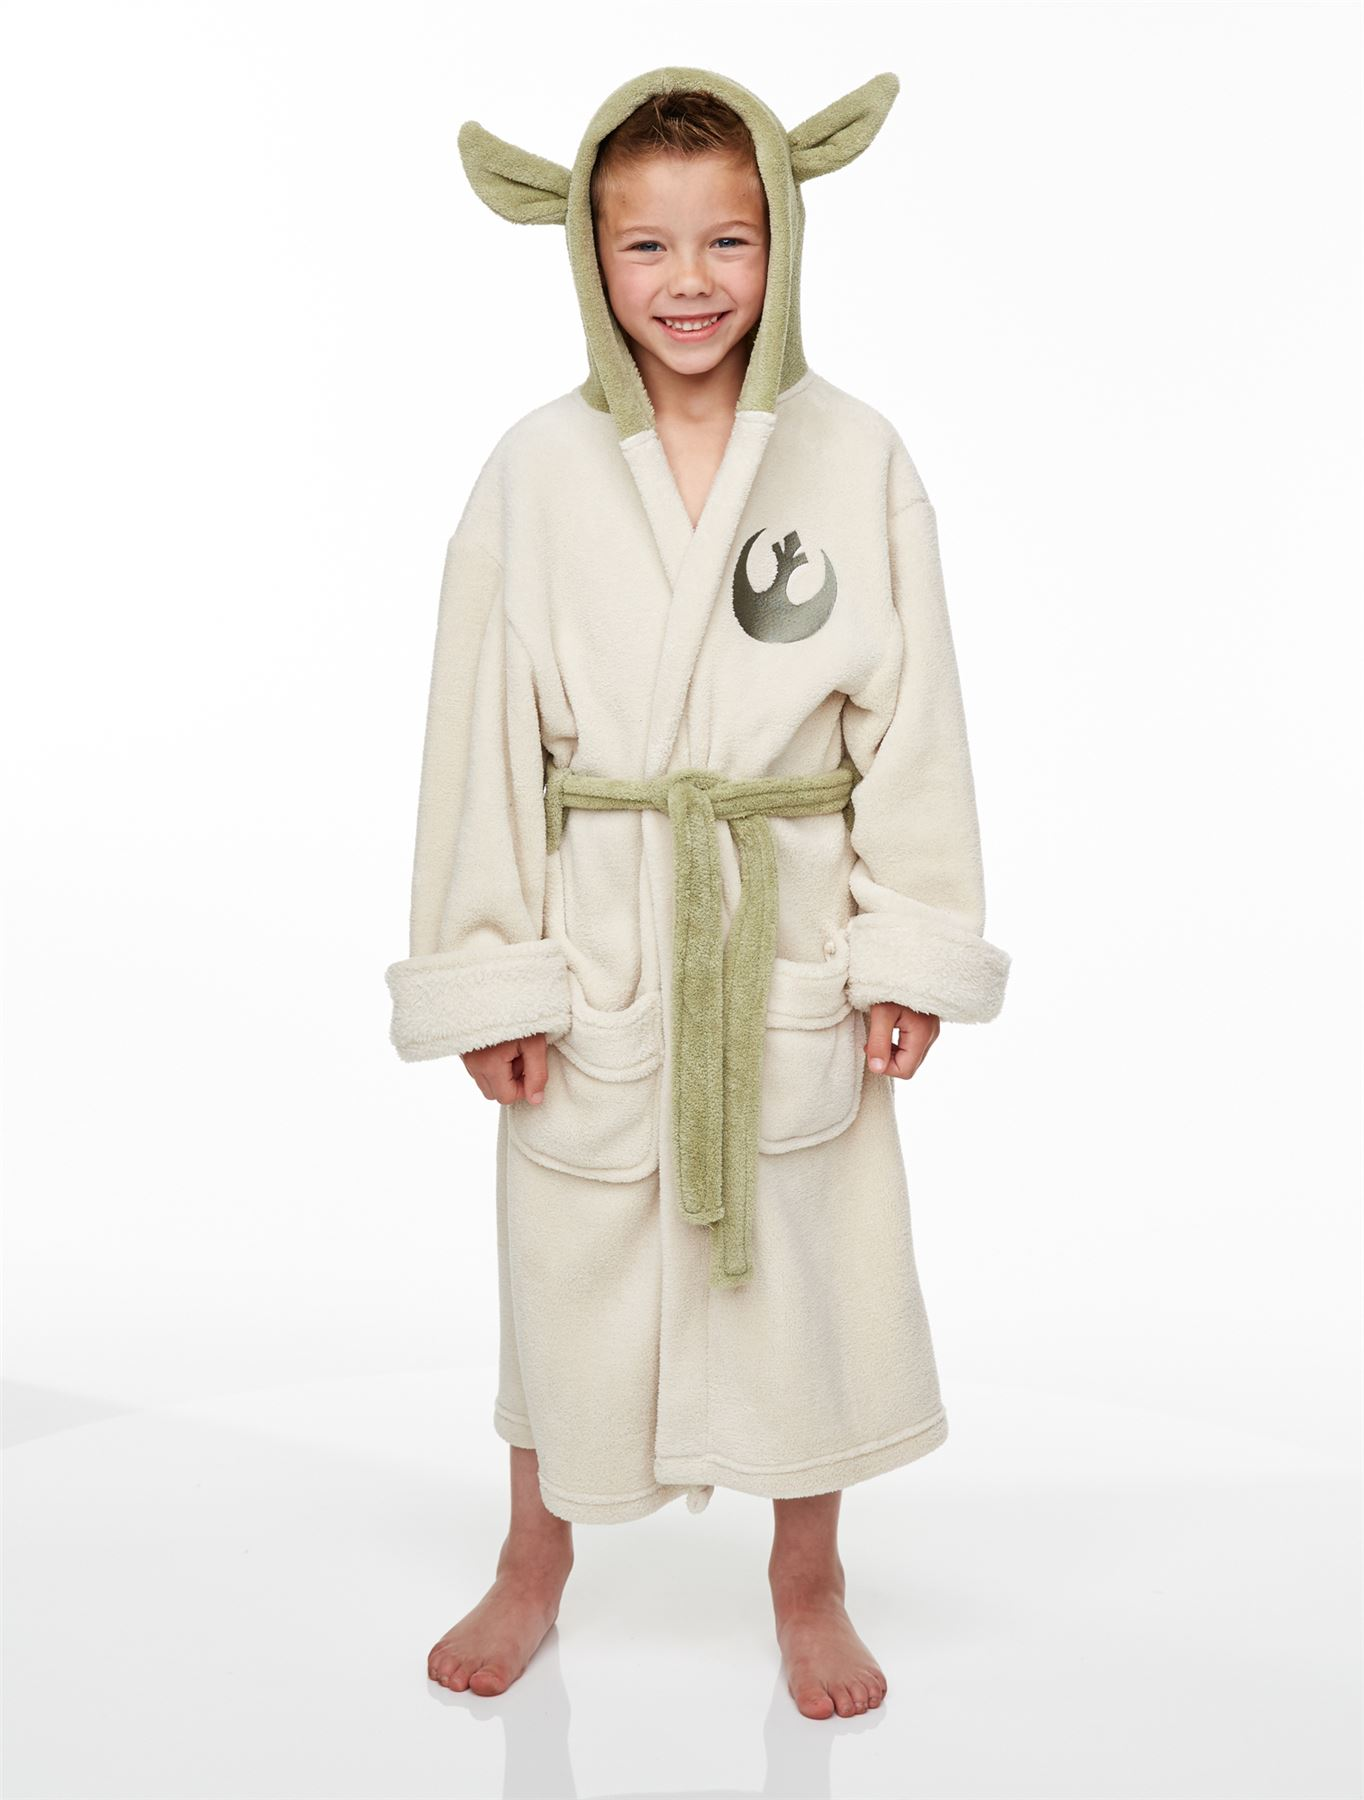 Star wars robe ebay